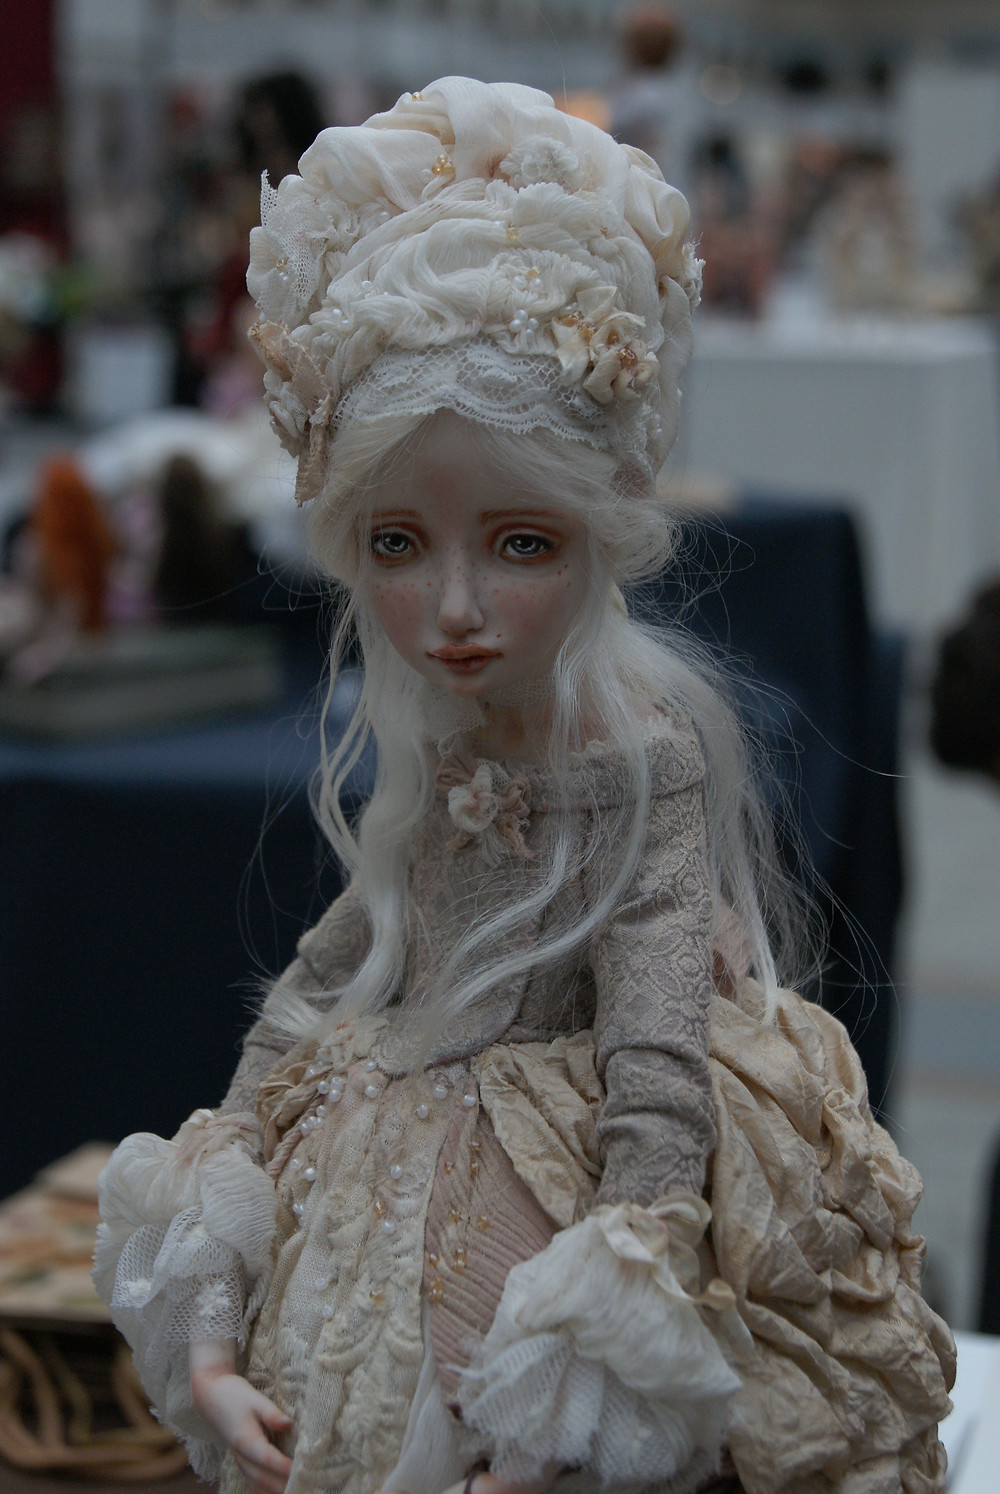 art of doll